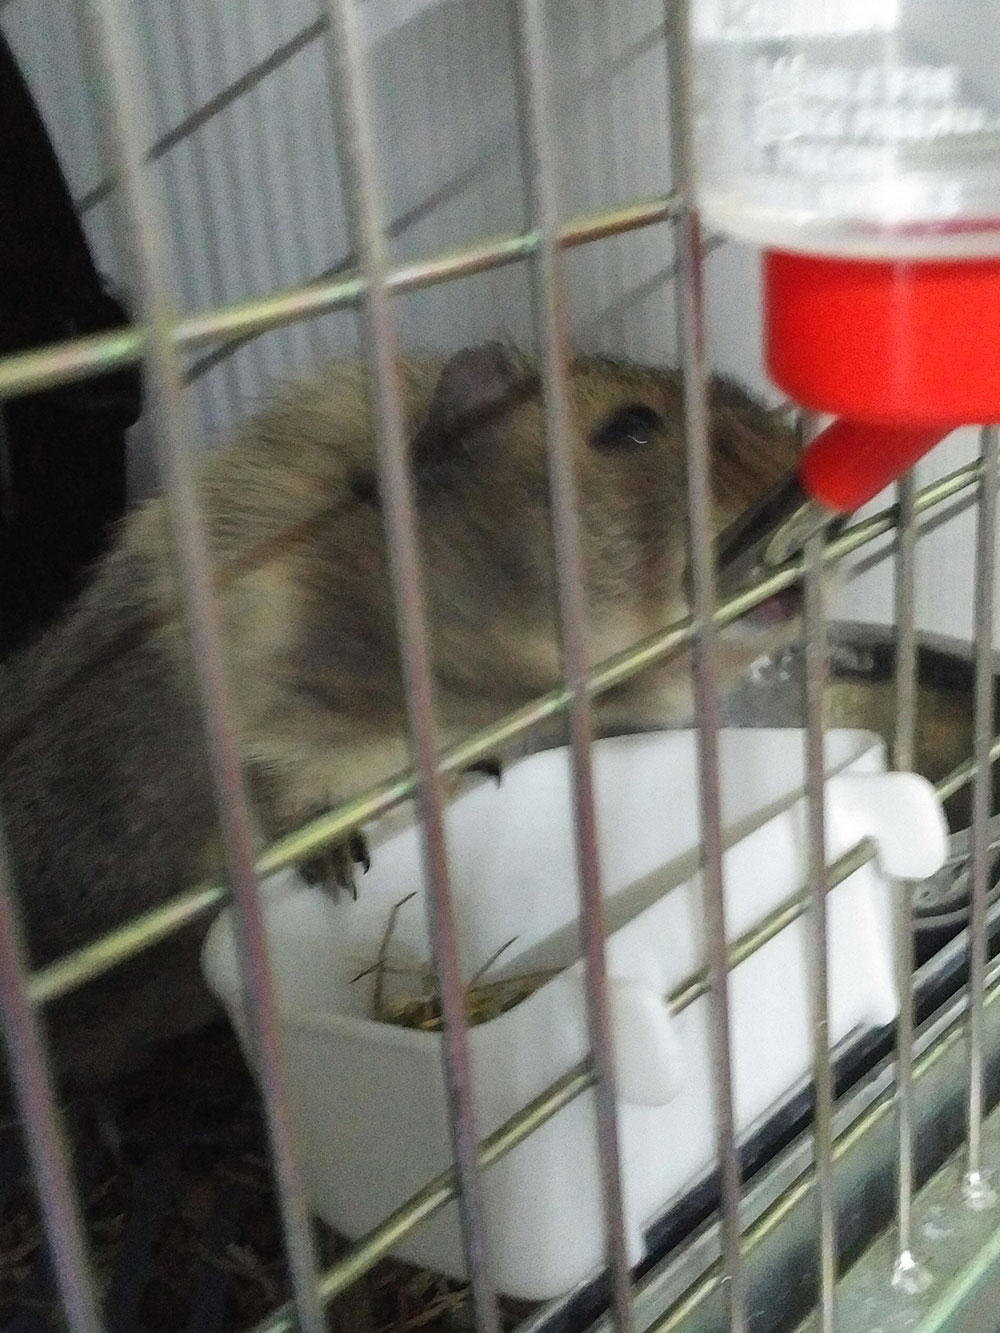 One of the two guinea pigs enjoying a drink